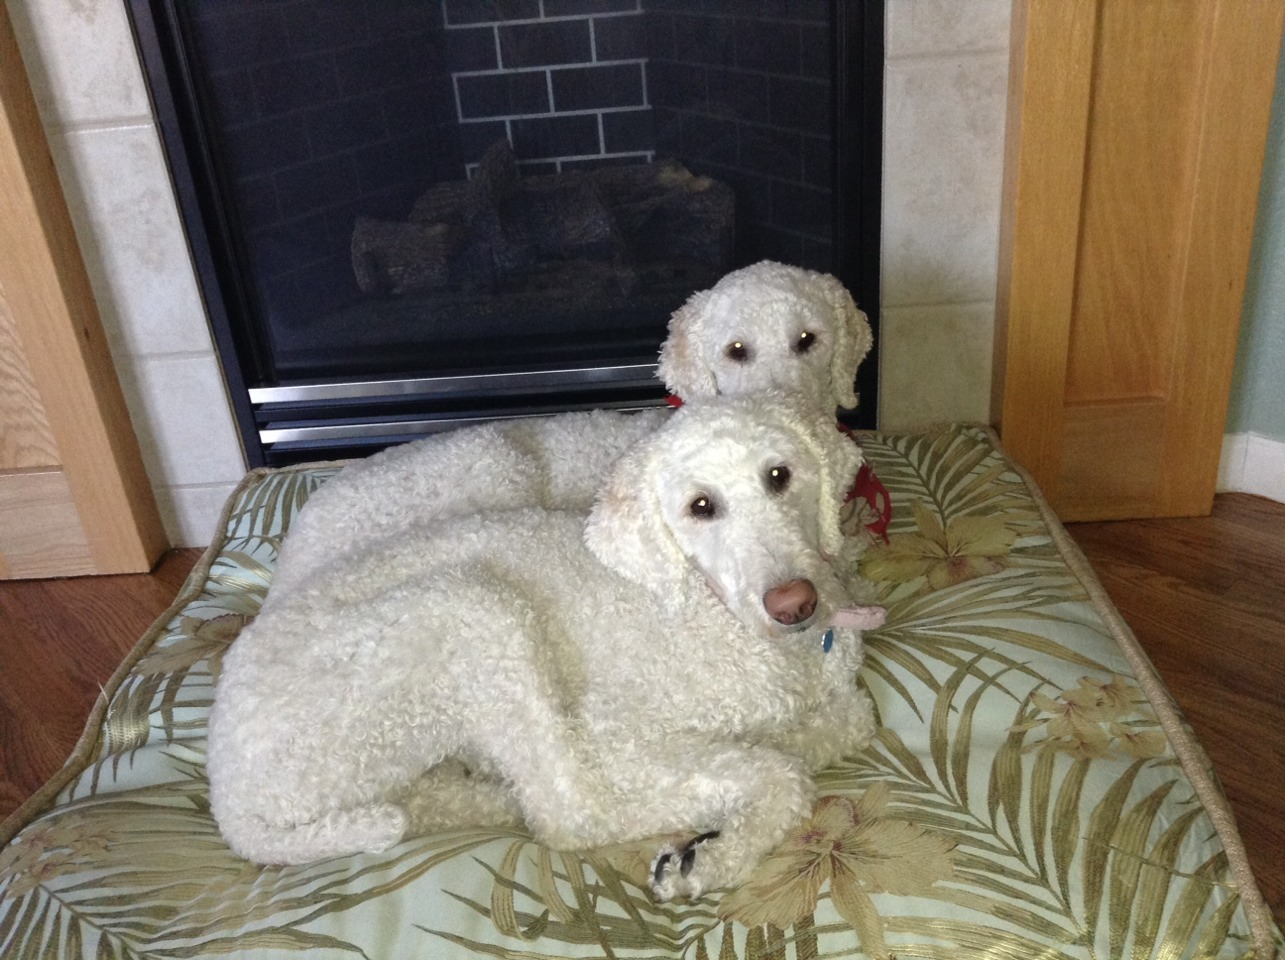 Snuggling on their bed